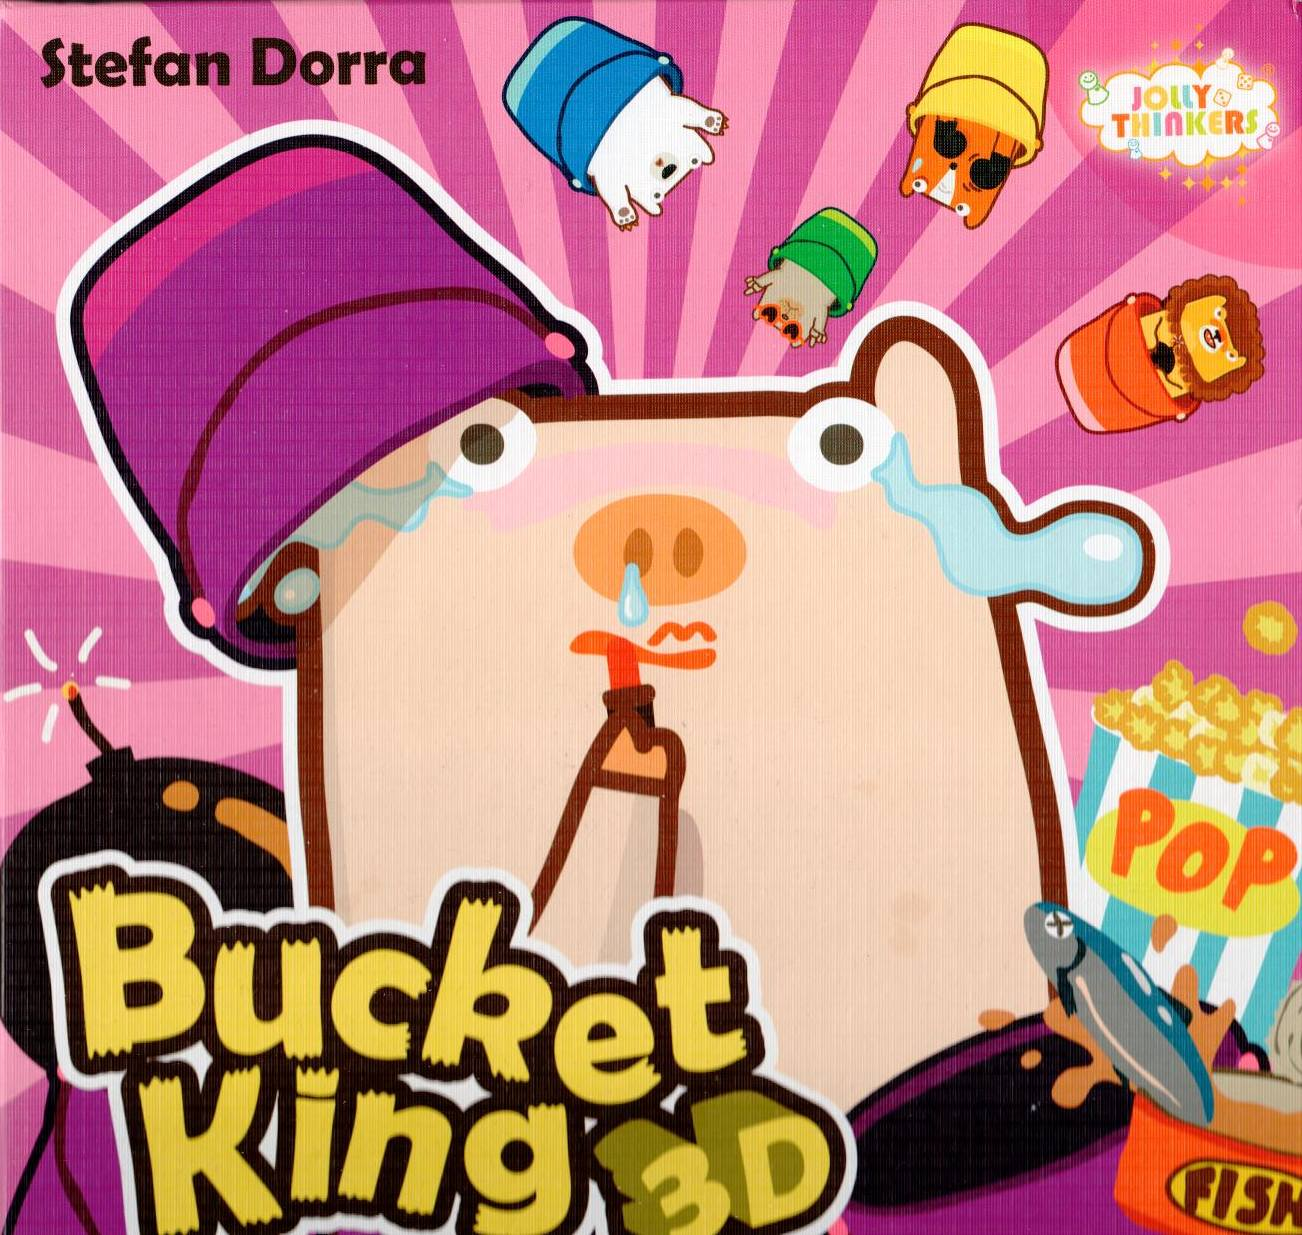 Bucket King 3D - Das Cover